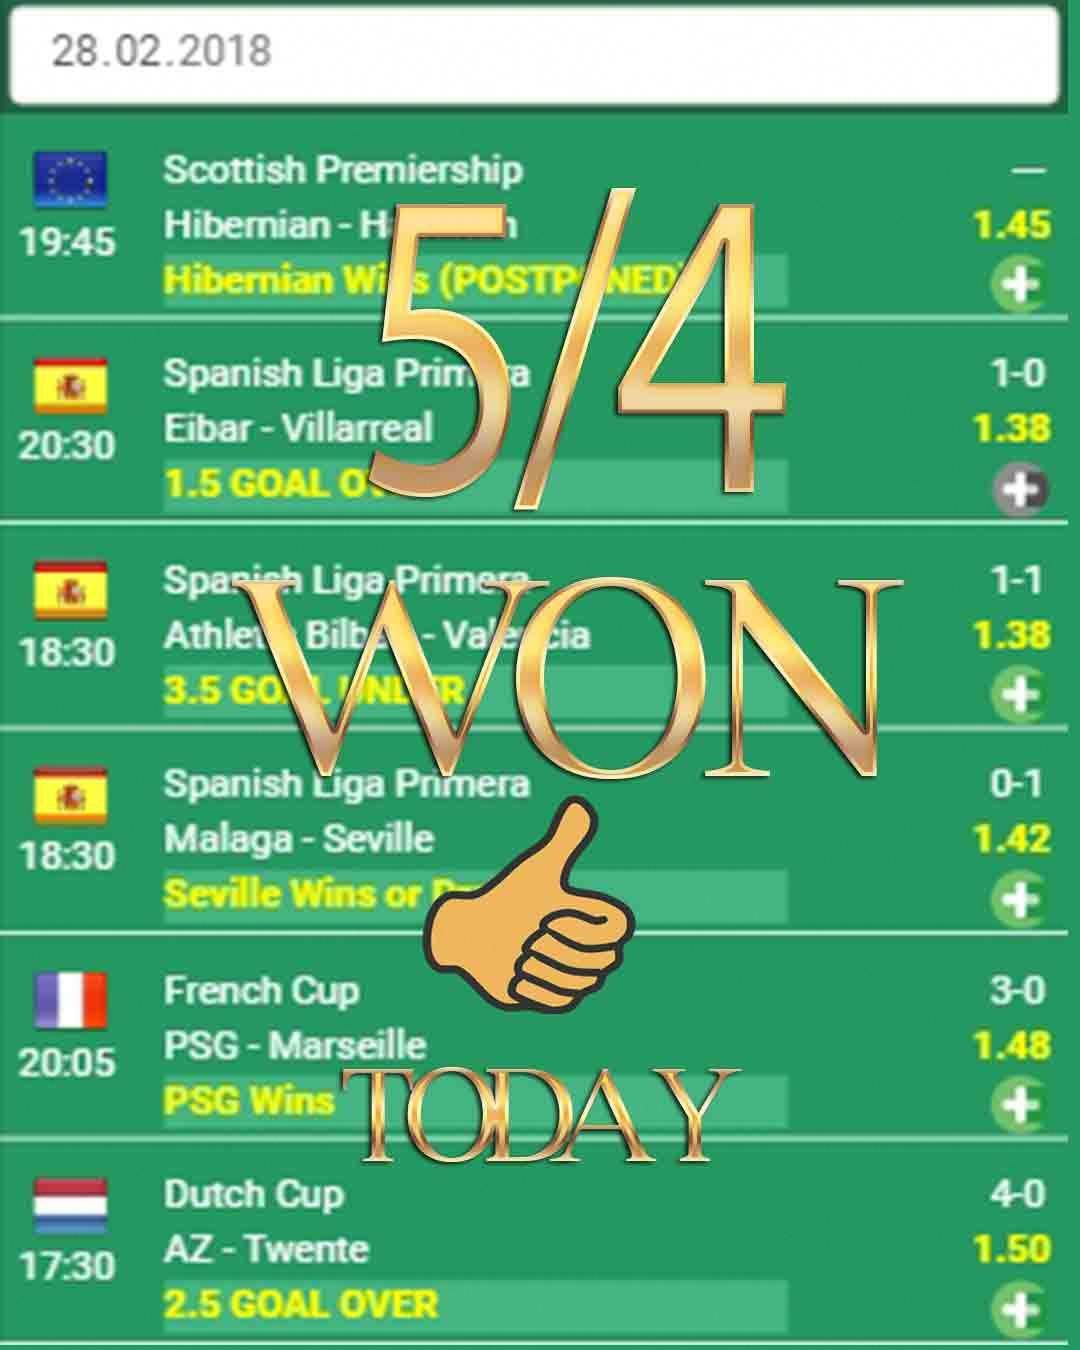 Betting Tips 5 4 Won Betting Tips Prediction Betting Tips Soccer Expert Betting Odds Tips Bettingti In 2020 Gambling Quotes Video Games For Kids Gambling Humor